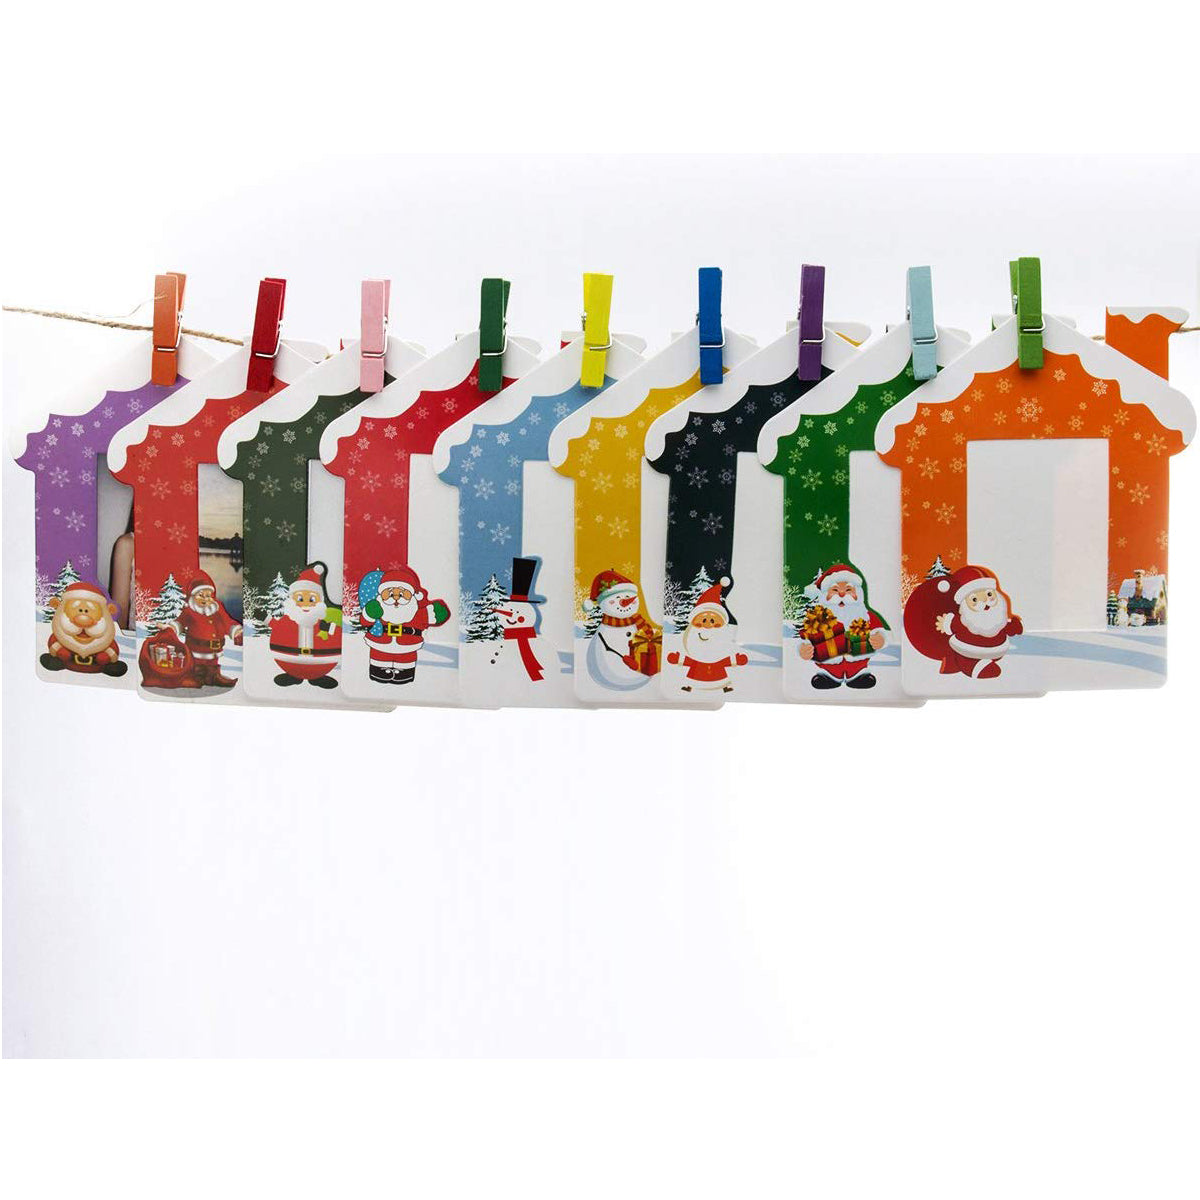 """CAIUL Instax Mini Colorful Frame for Fujifilm Mini 8 8+ 9 70 7s 90 25 26 50s Film, 10 Pcs (Rabbit)  """